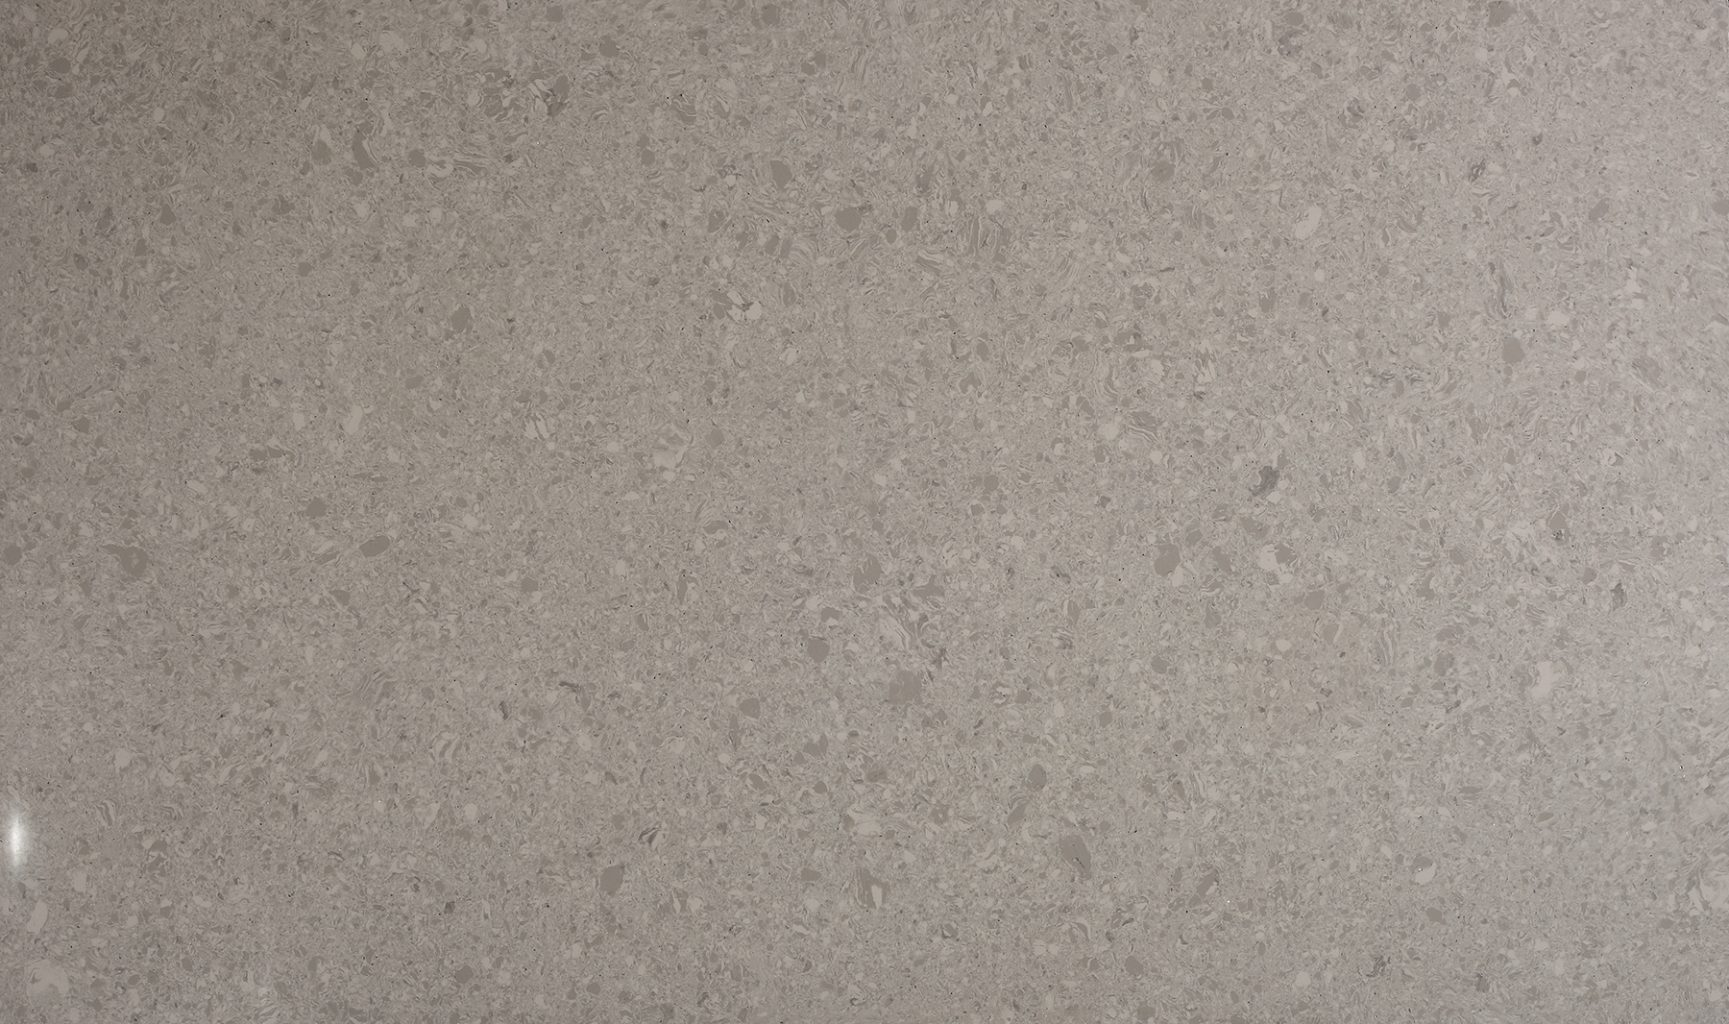 Taupe Quartz Countertop Quality Quartz Countertops For Your Kitchen Bathroom